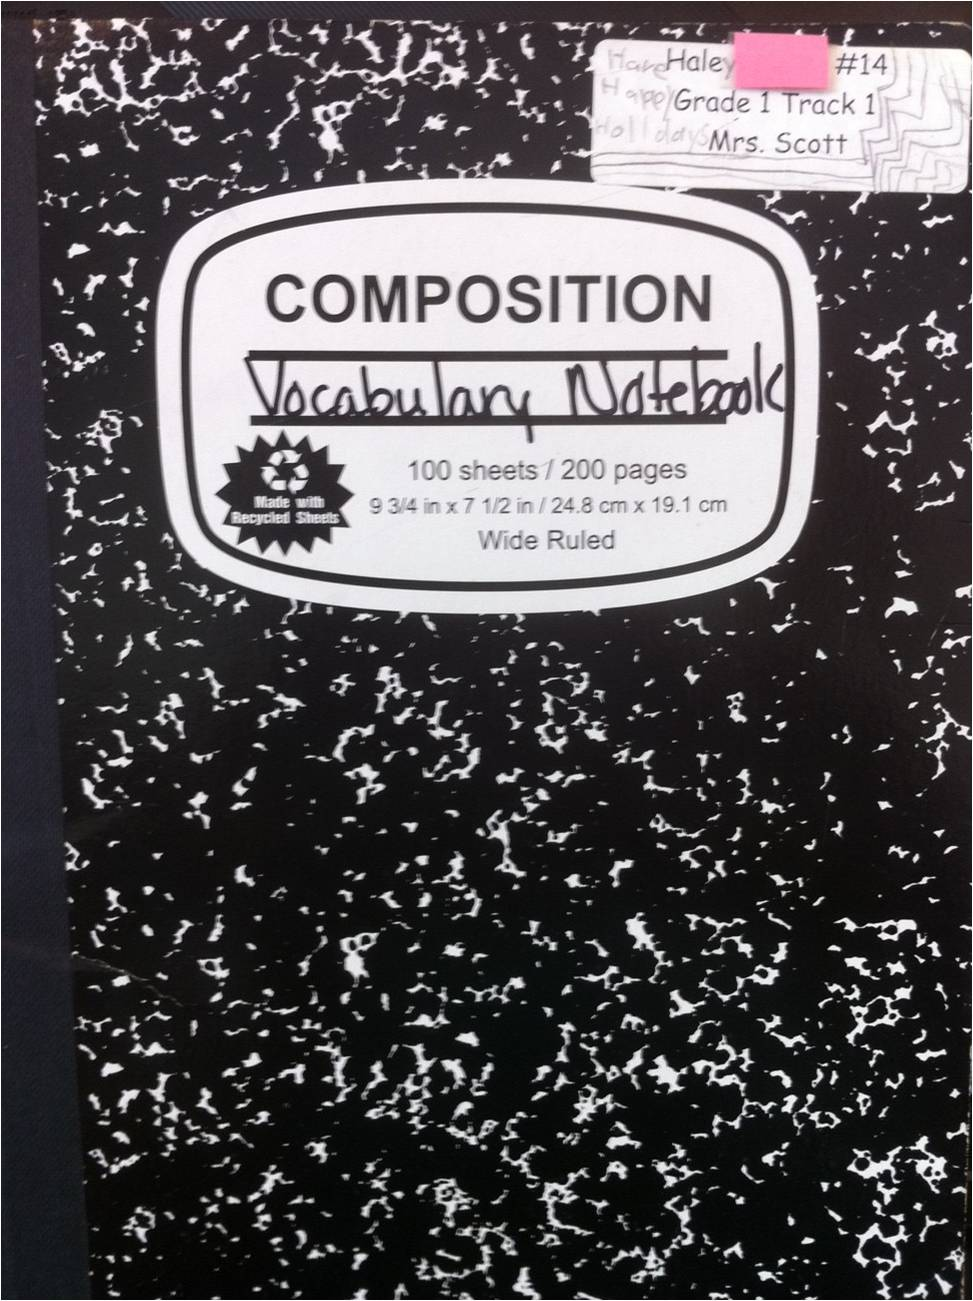 Composition Book Cover Template ~ Composition notebook cover template imgkid the